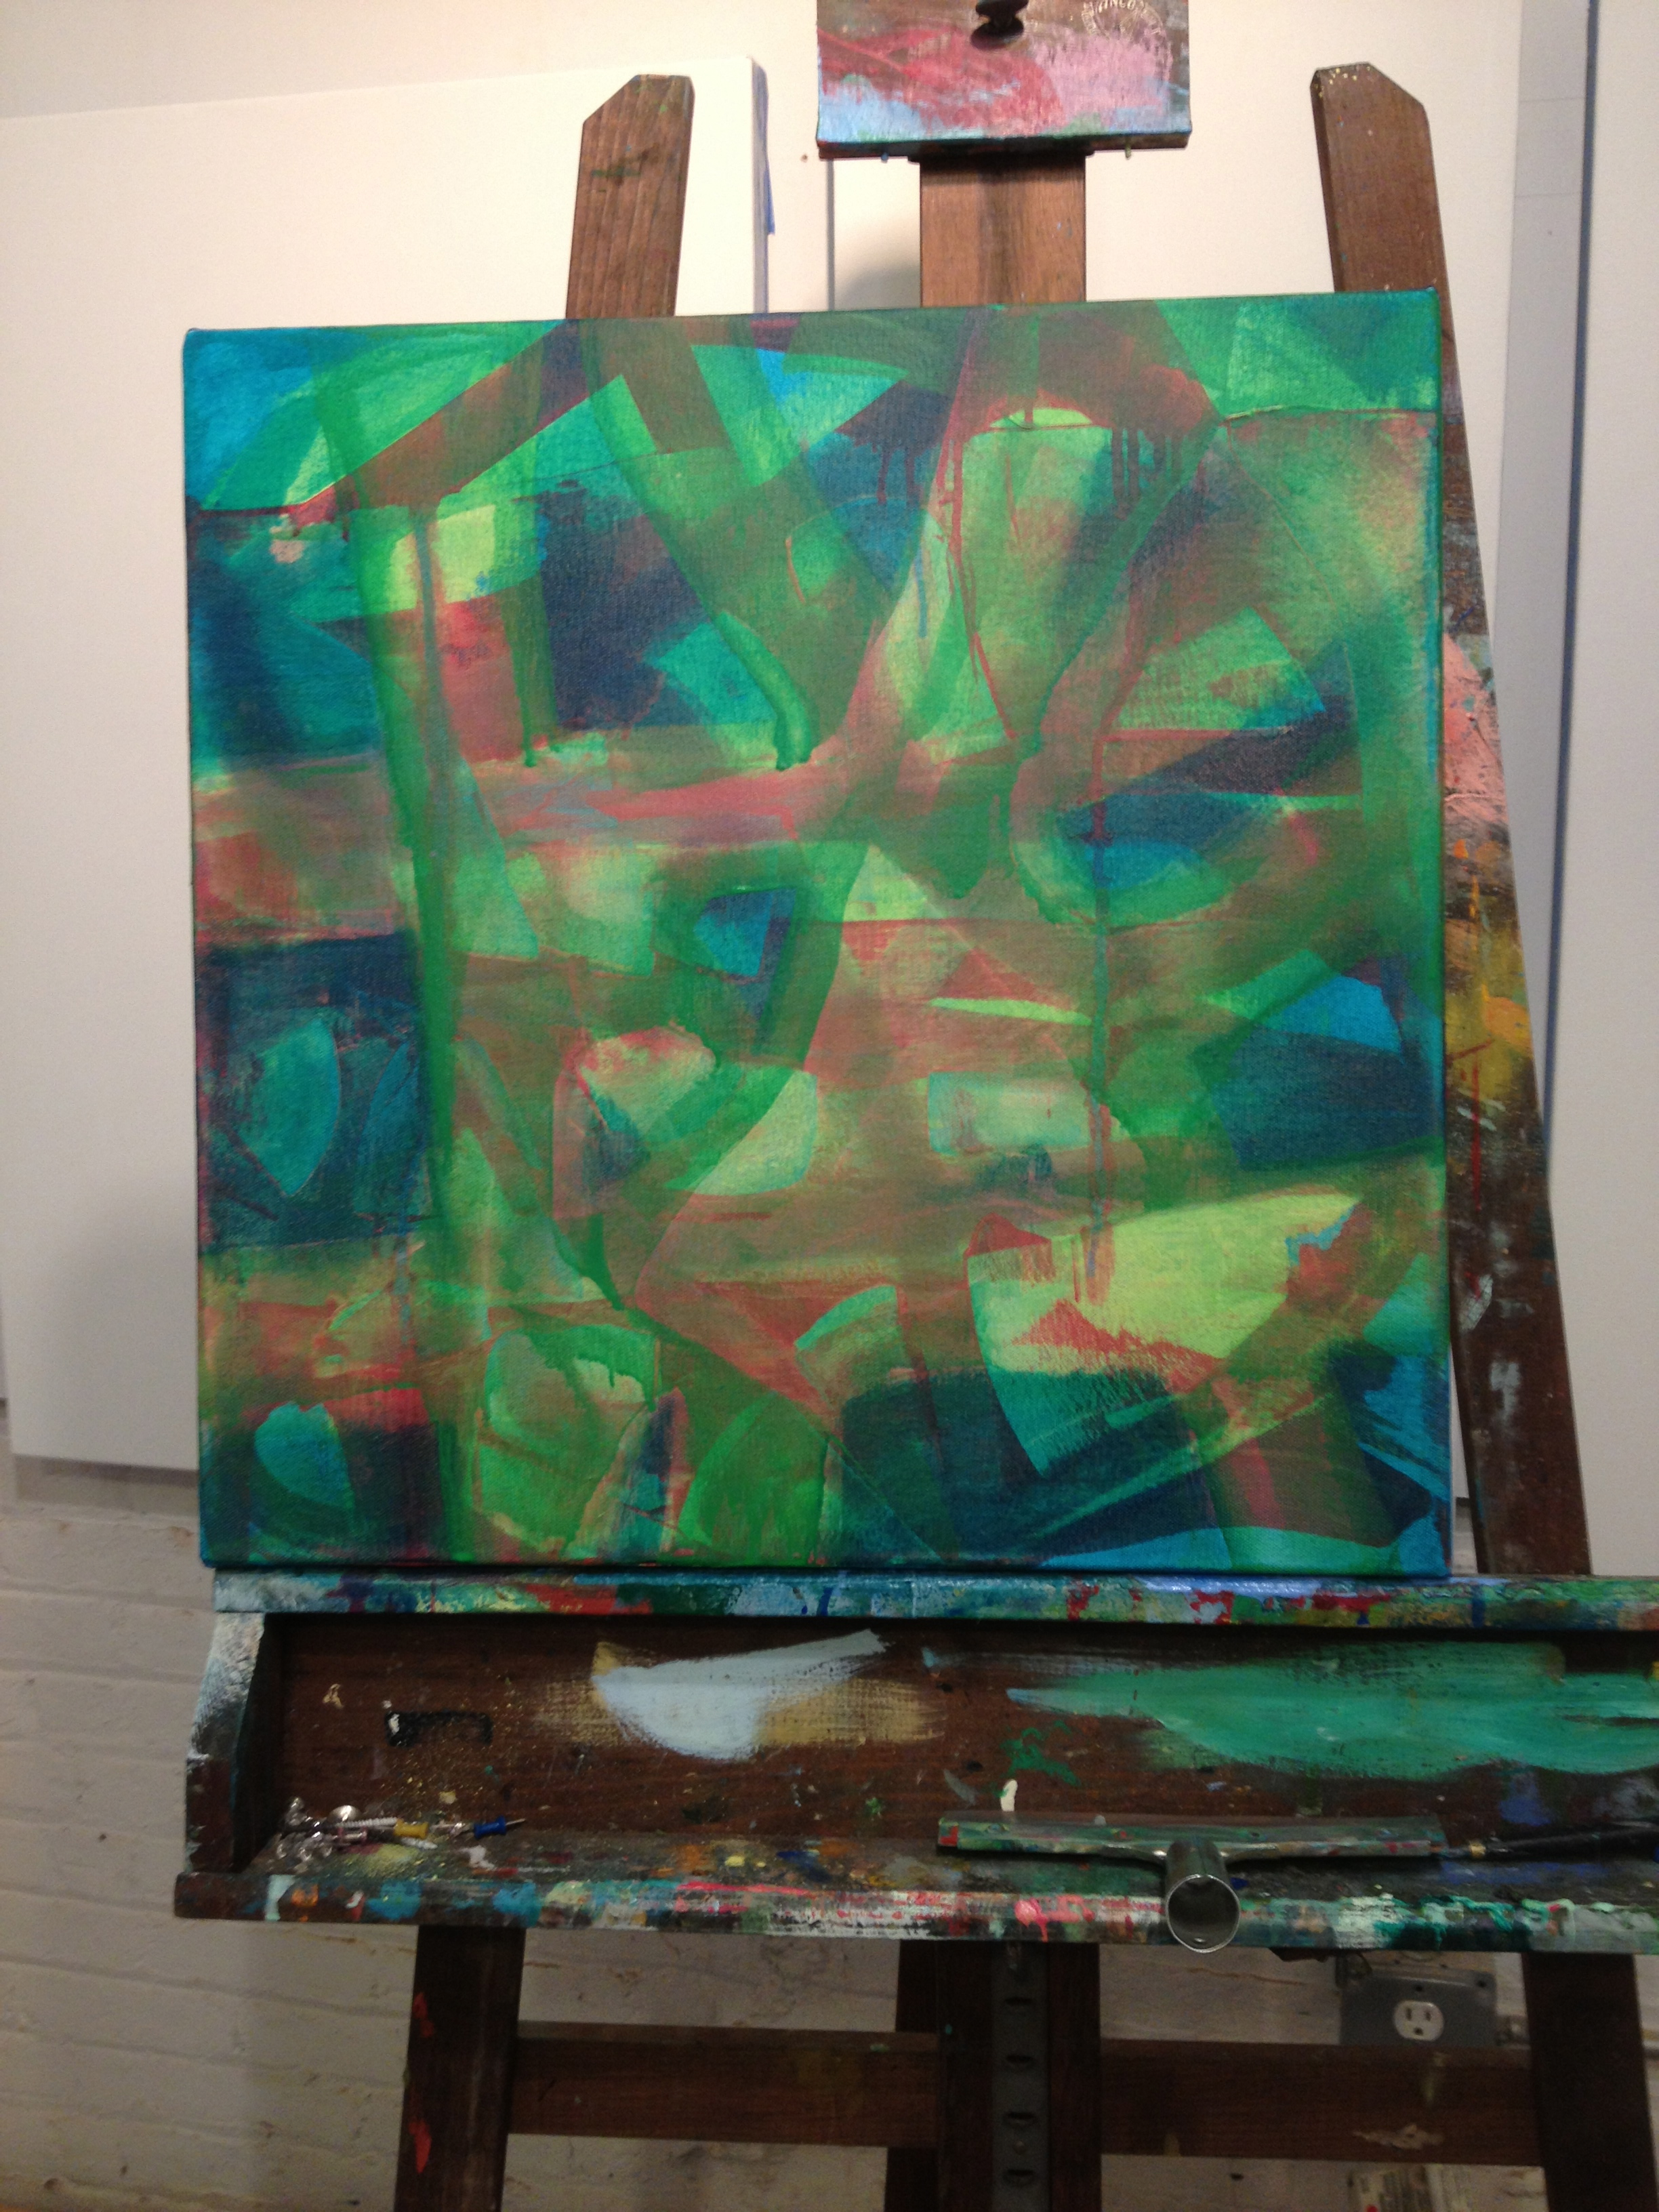 Still working some acrylic layers. They dry faster so I can build up a surface of color before using oil.